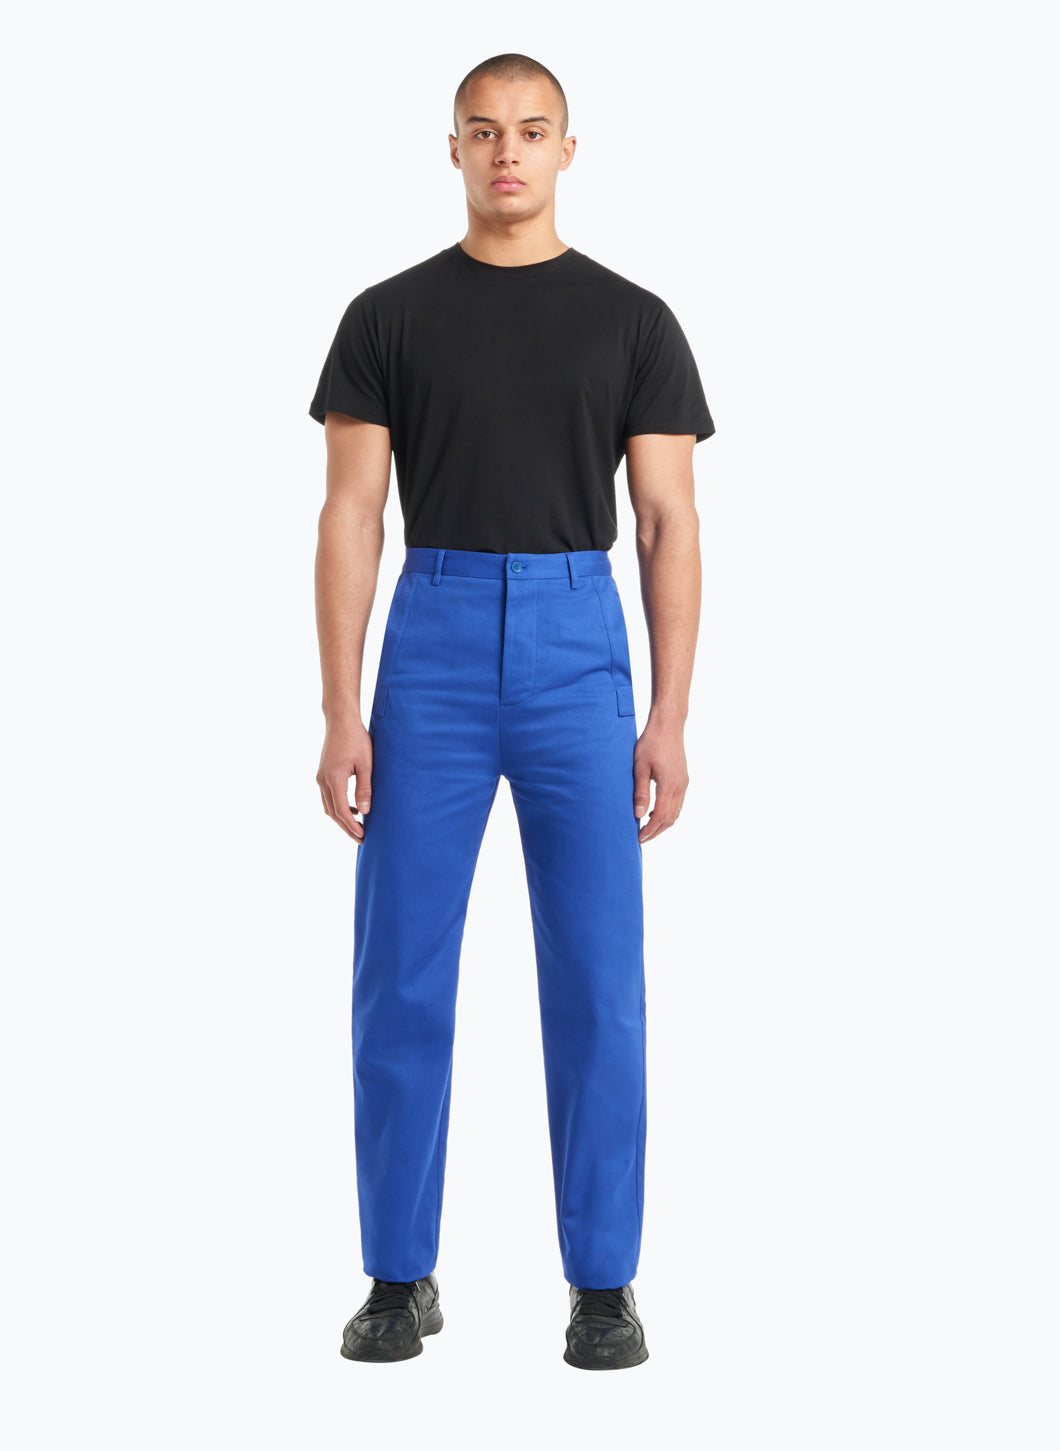 Pants with Reinforced Pockets in Royal Blue Gabardine